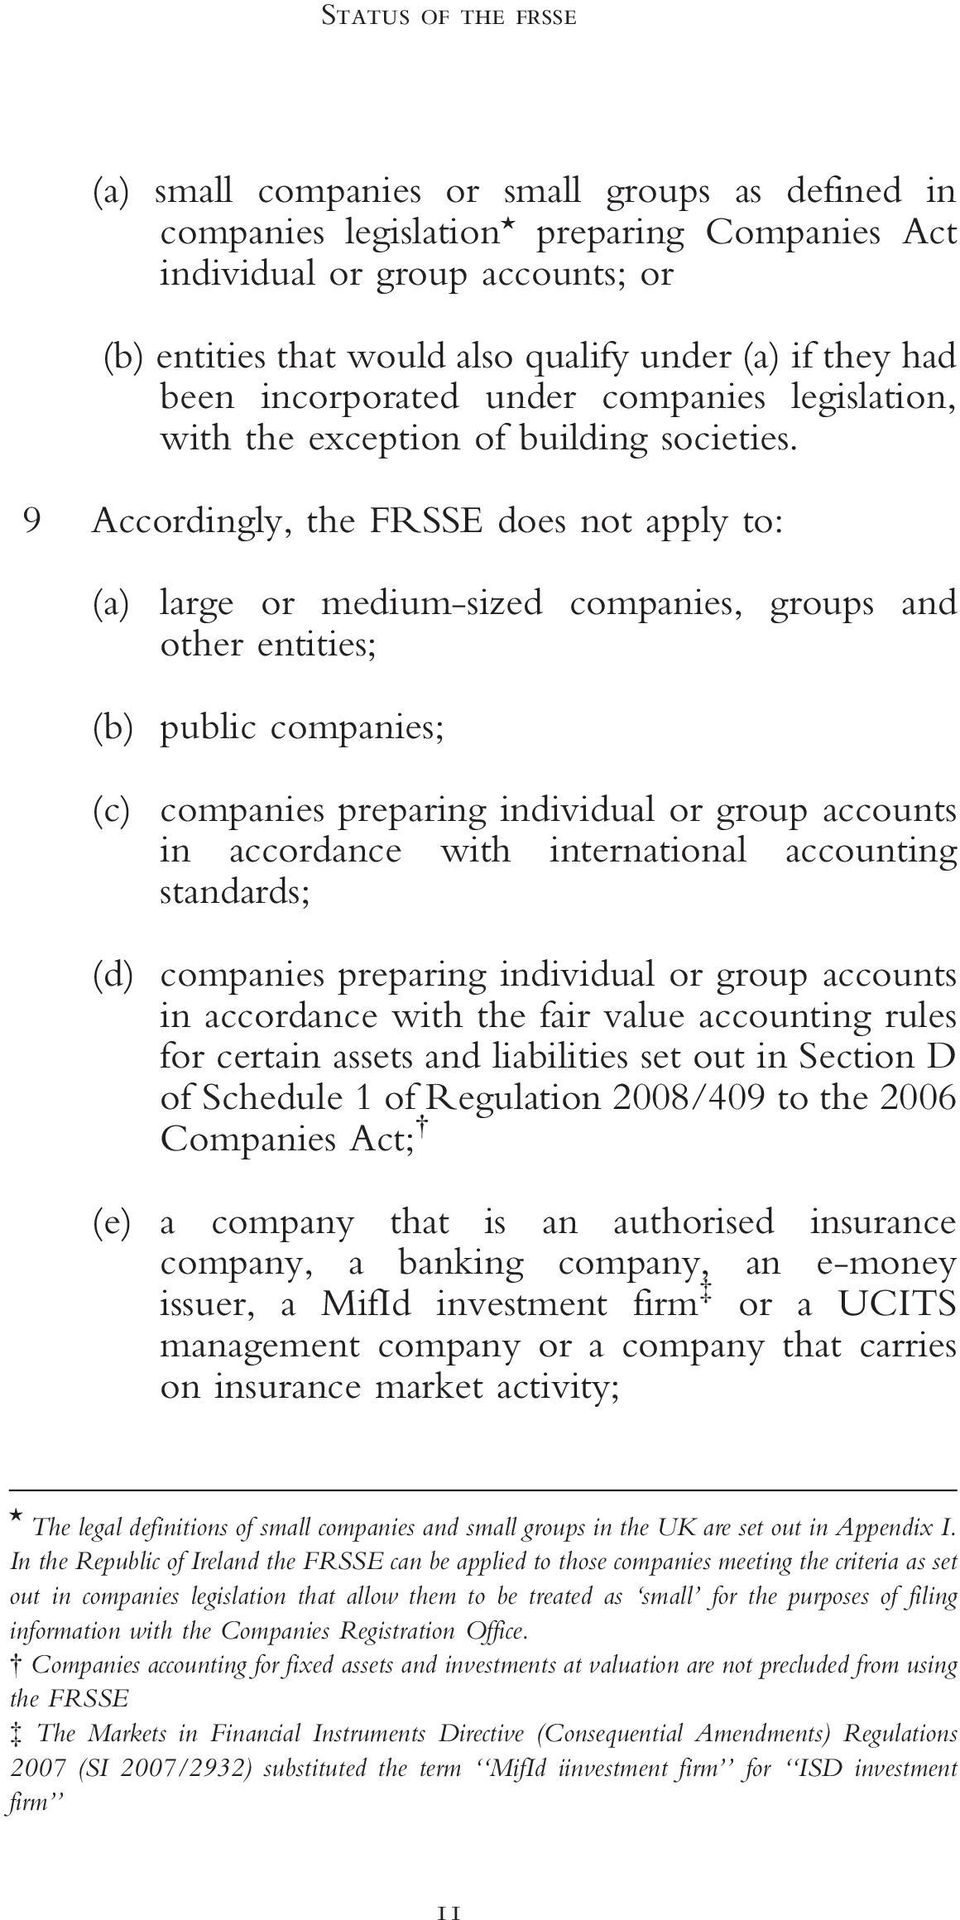 9 Accordingly, the FRSSE does not apply to: (a) large or medium-sized companies, groups and other entities; (b) public companies; (c) companies preparing individual or group accounts in accordance